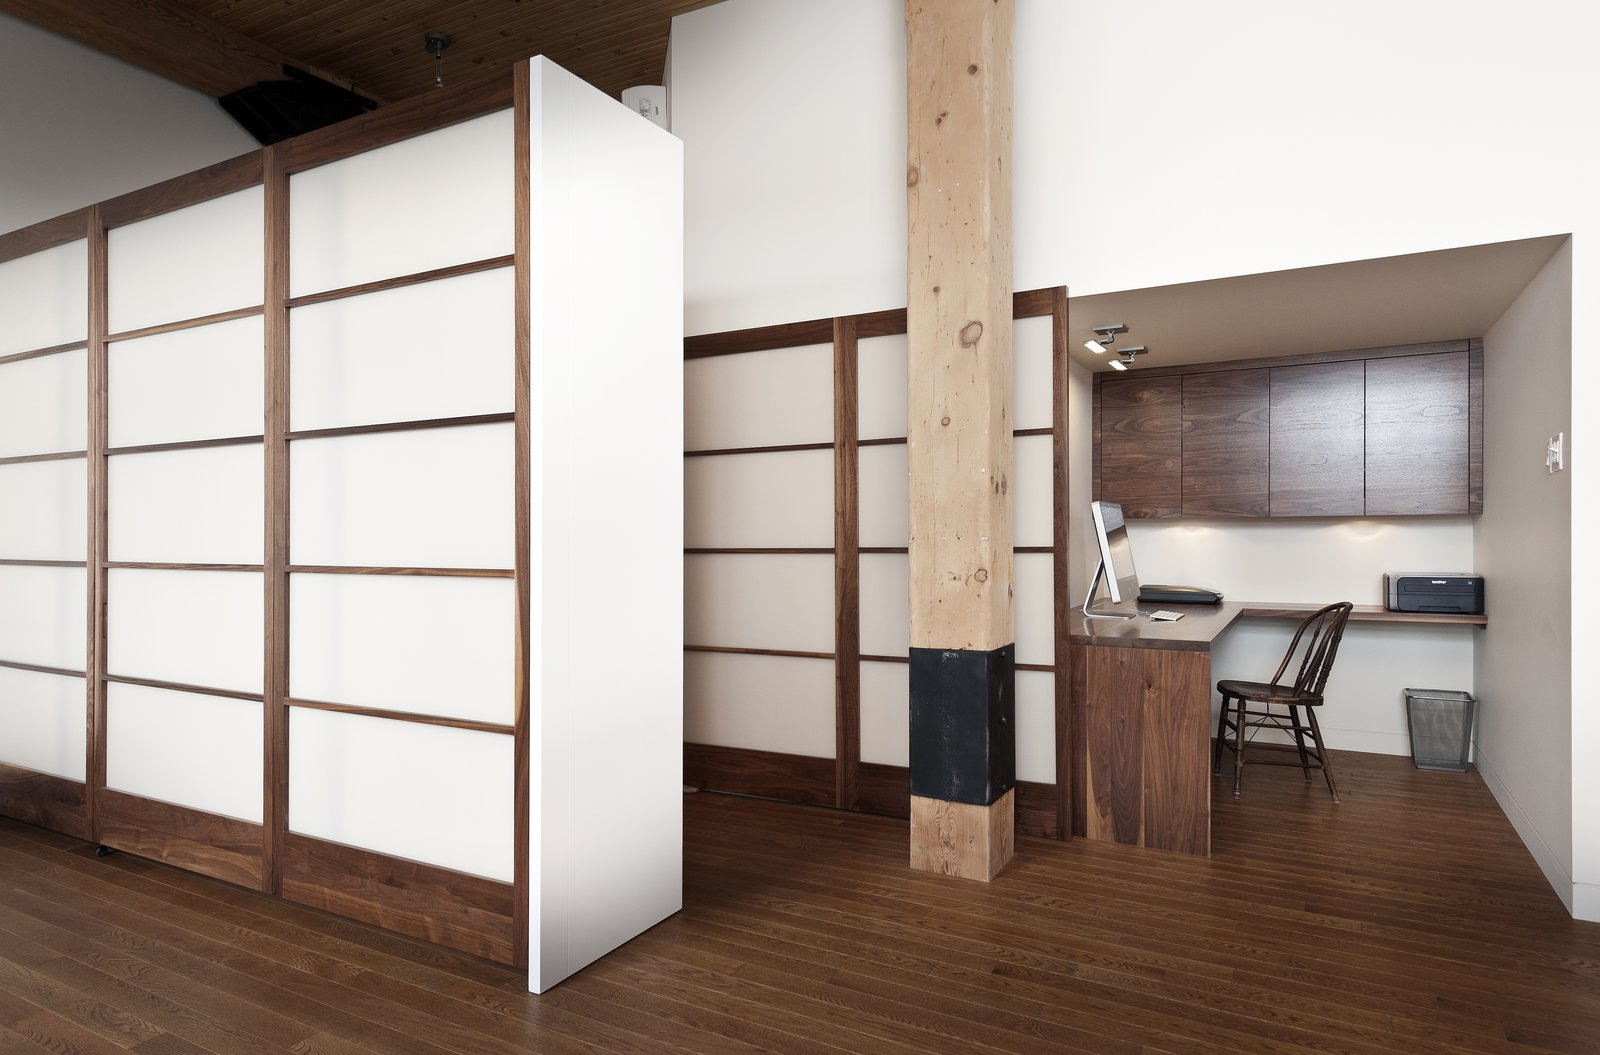 While the homeowners were inspired by shōji screens, the challenge was how to secure them. Gepetto's solution was a sliding three-panel screen anchored at one end of the wall unit.  Brick House by Caroline Wallis